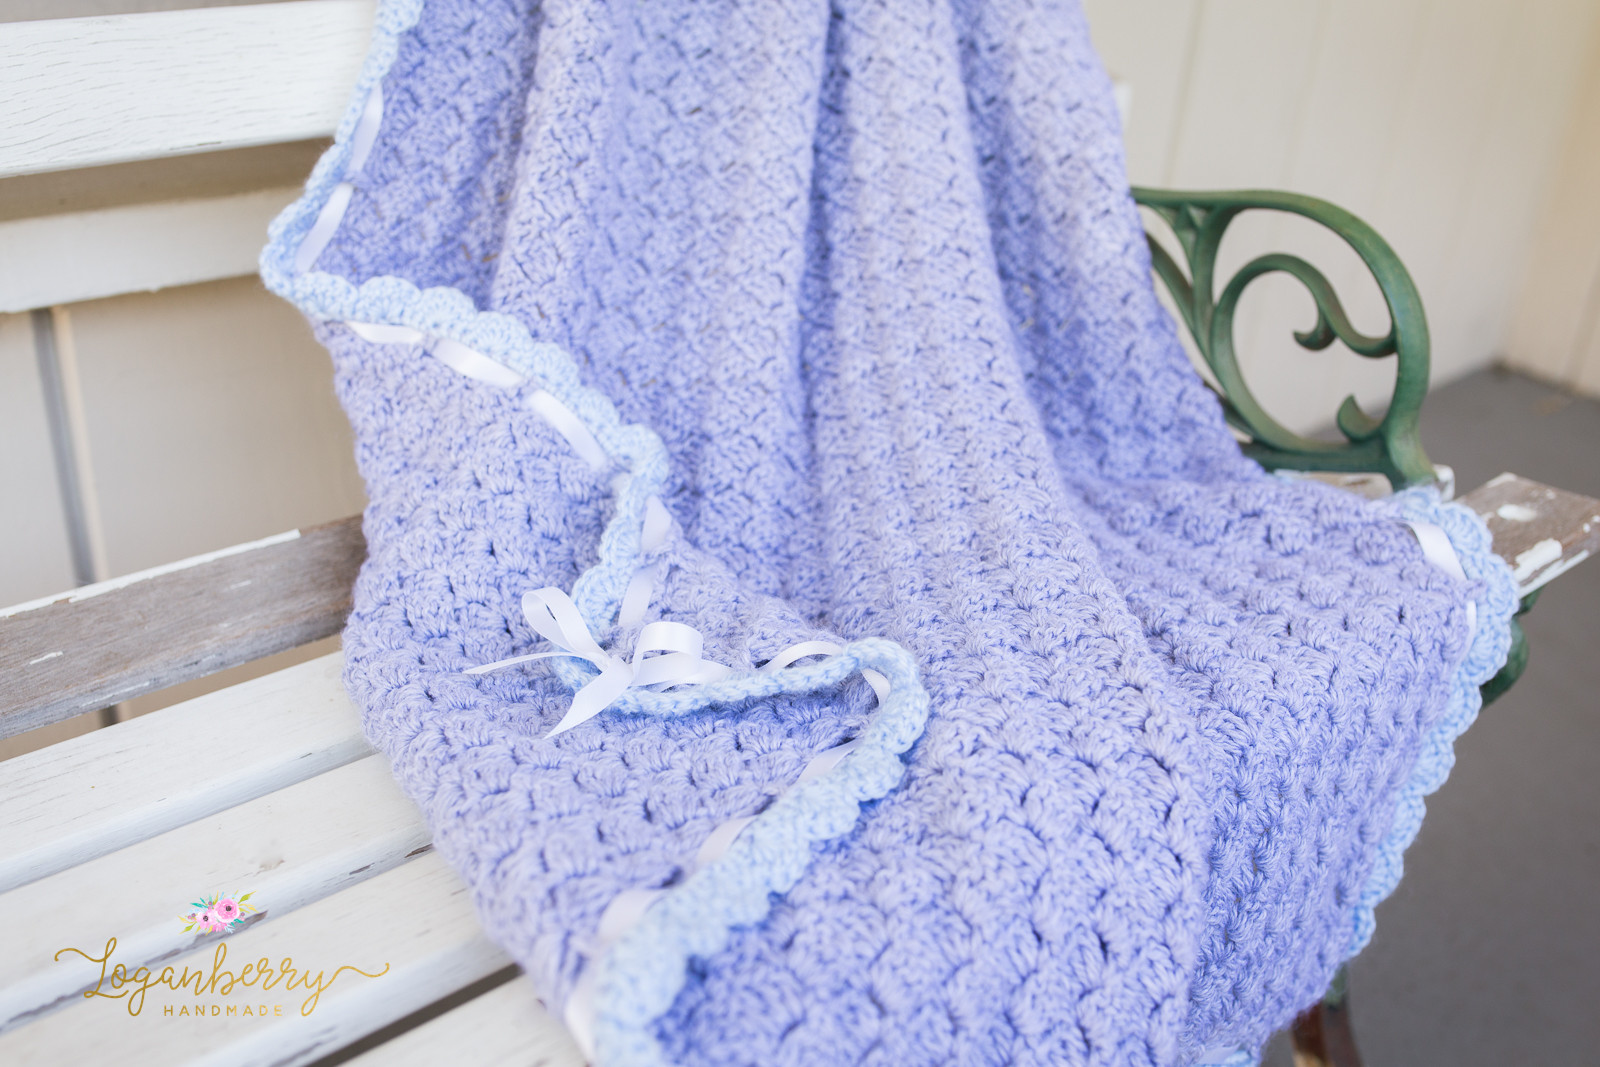 Crochet Patterns for Baby Blankets Awesome Baby Blue Scallops Crochet Blanket – Free Crochet Pattern Of Great 50 Photos Crochet Patterns for Baby Blankets